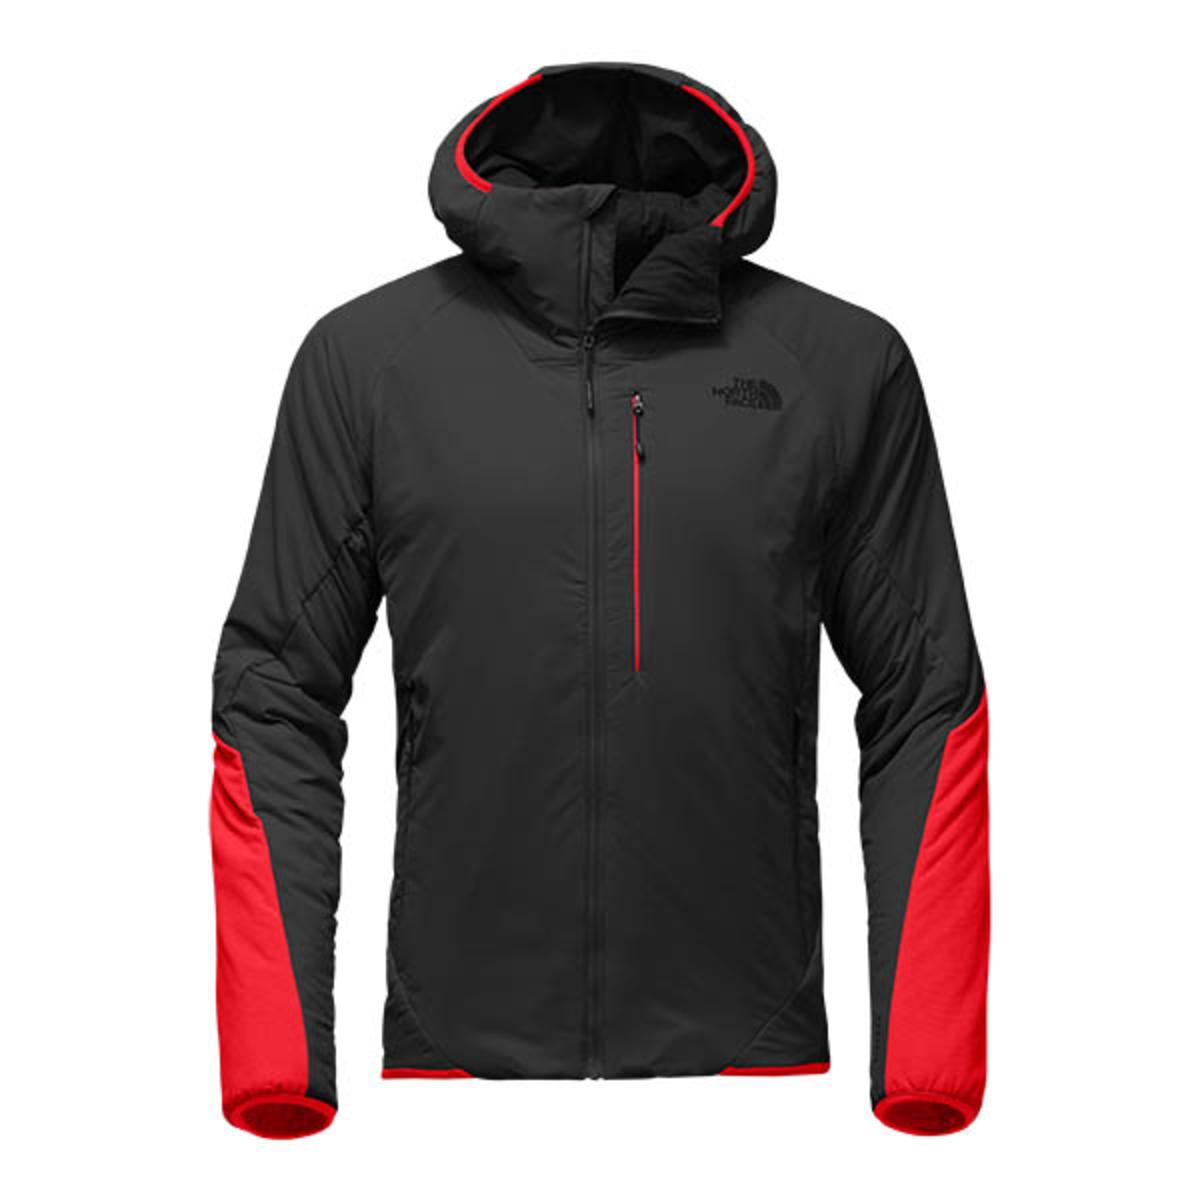 19913cf2b The North Face Men's Ventrix Hoodie - The Warming Store